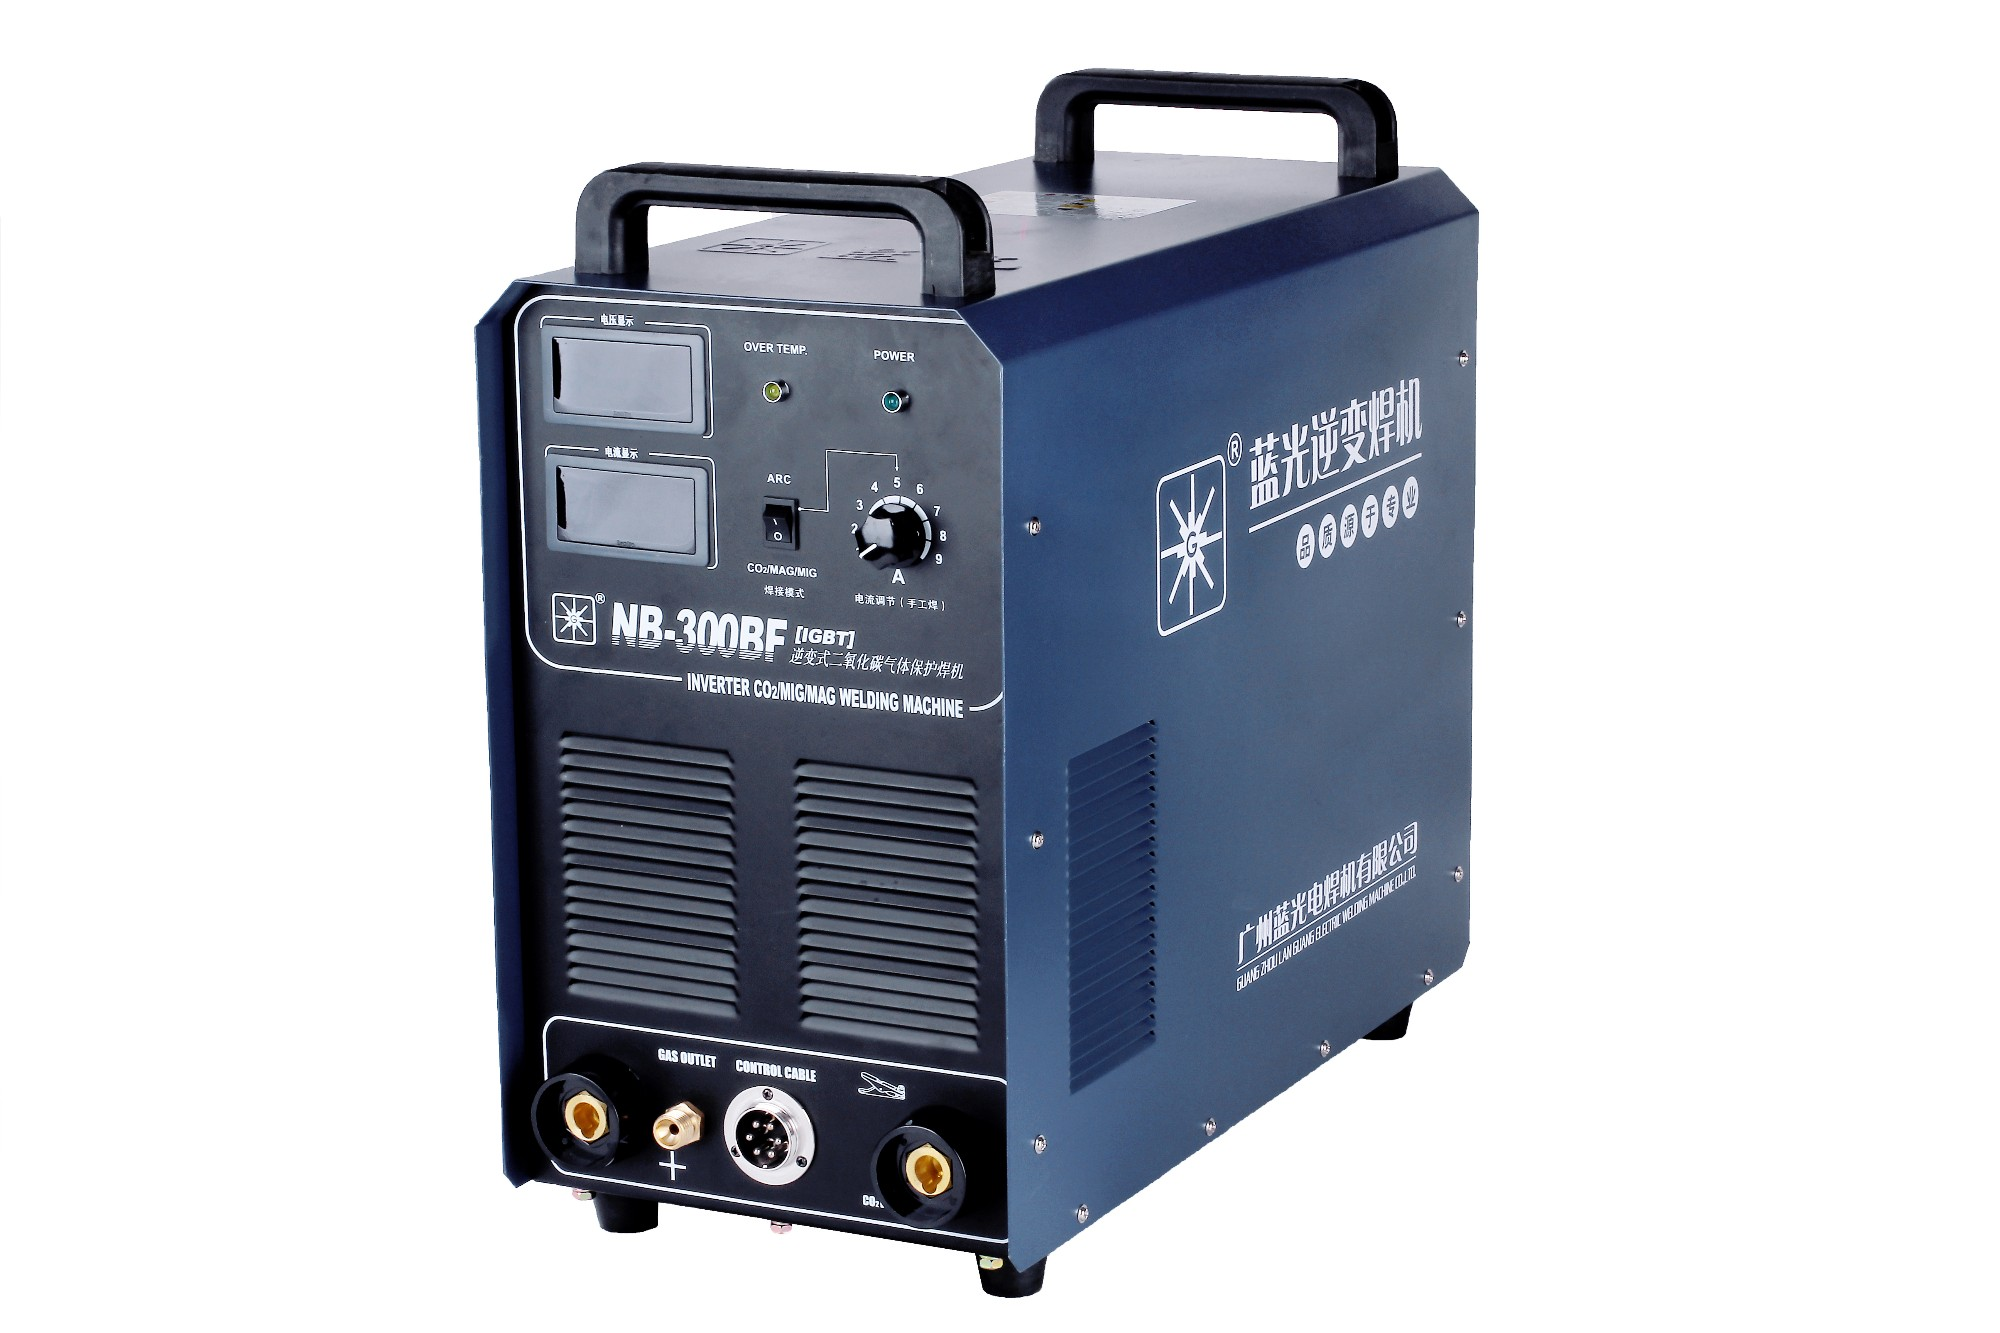 NB-300BF (AC220V) inverter split CO2 welding machine